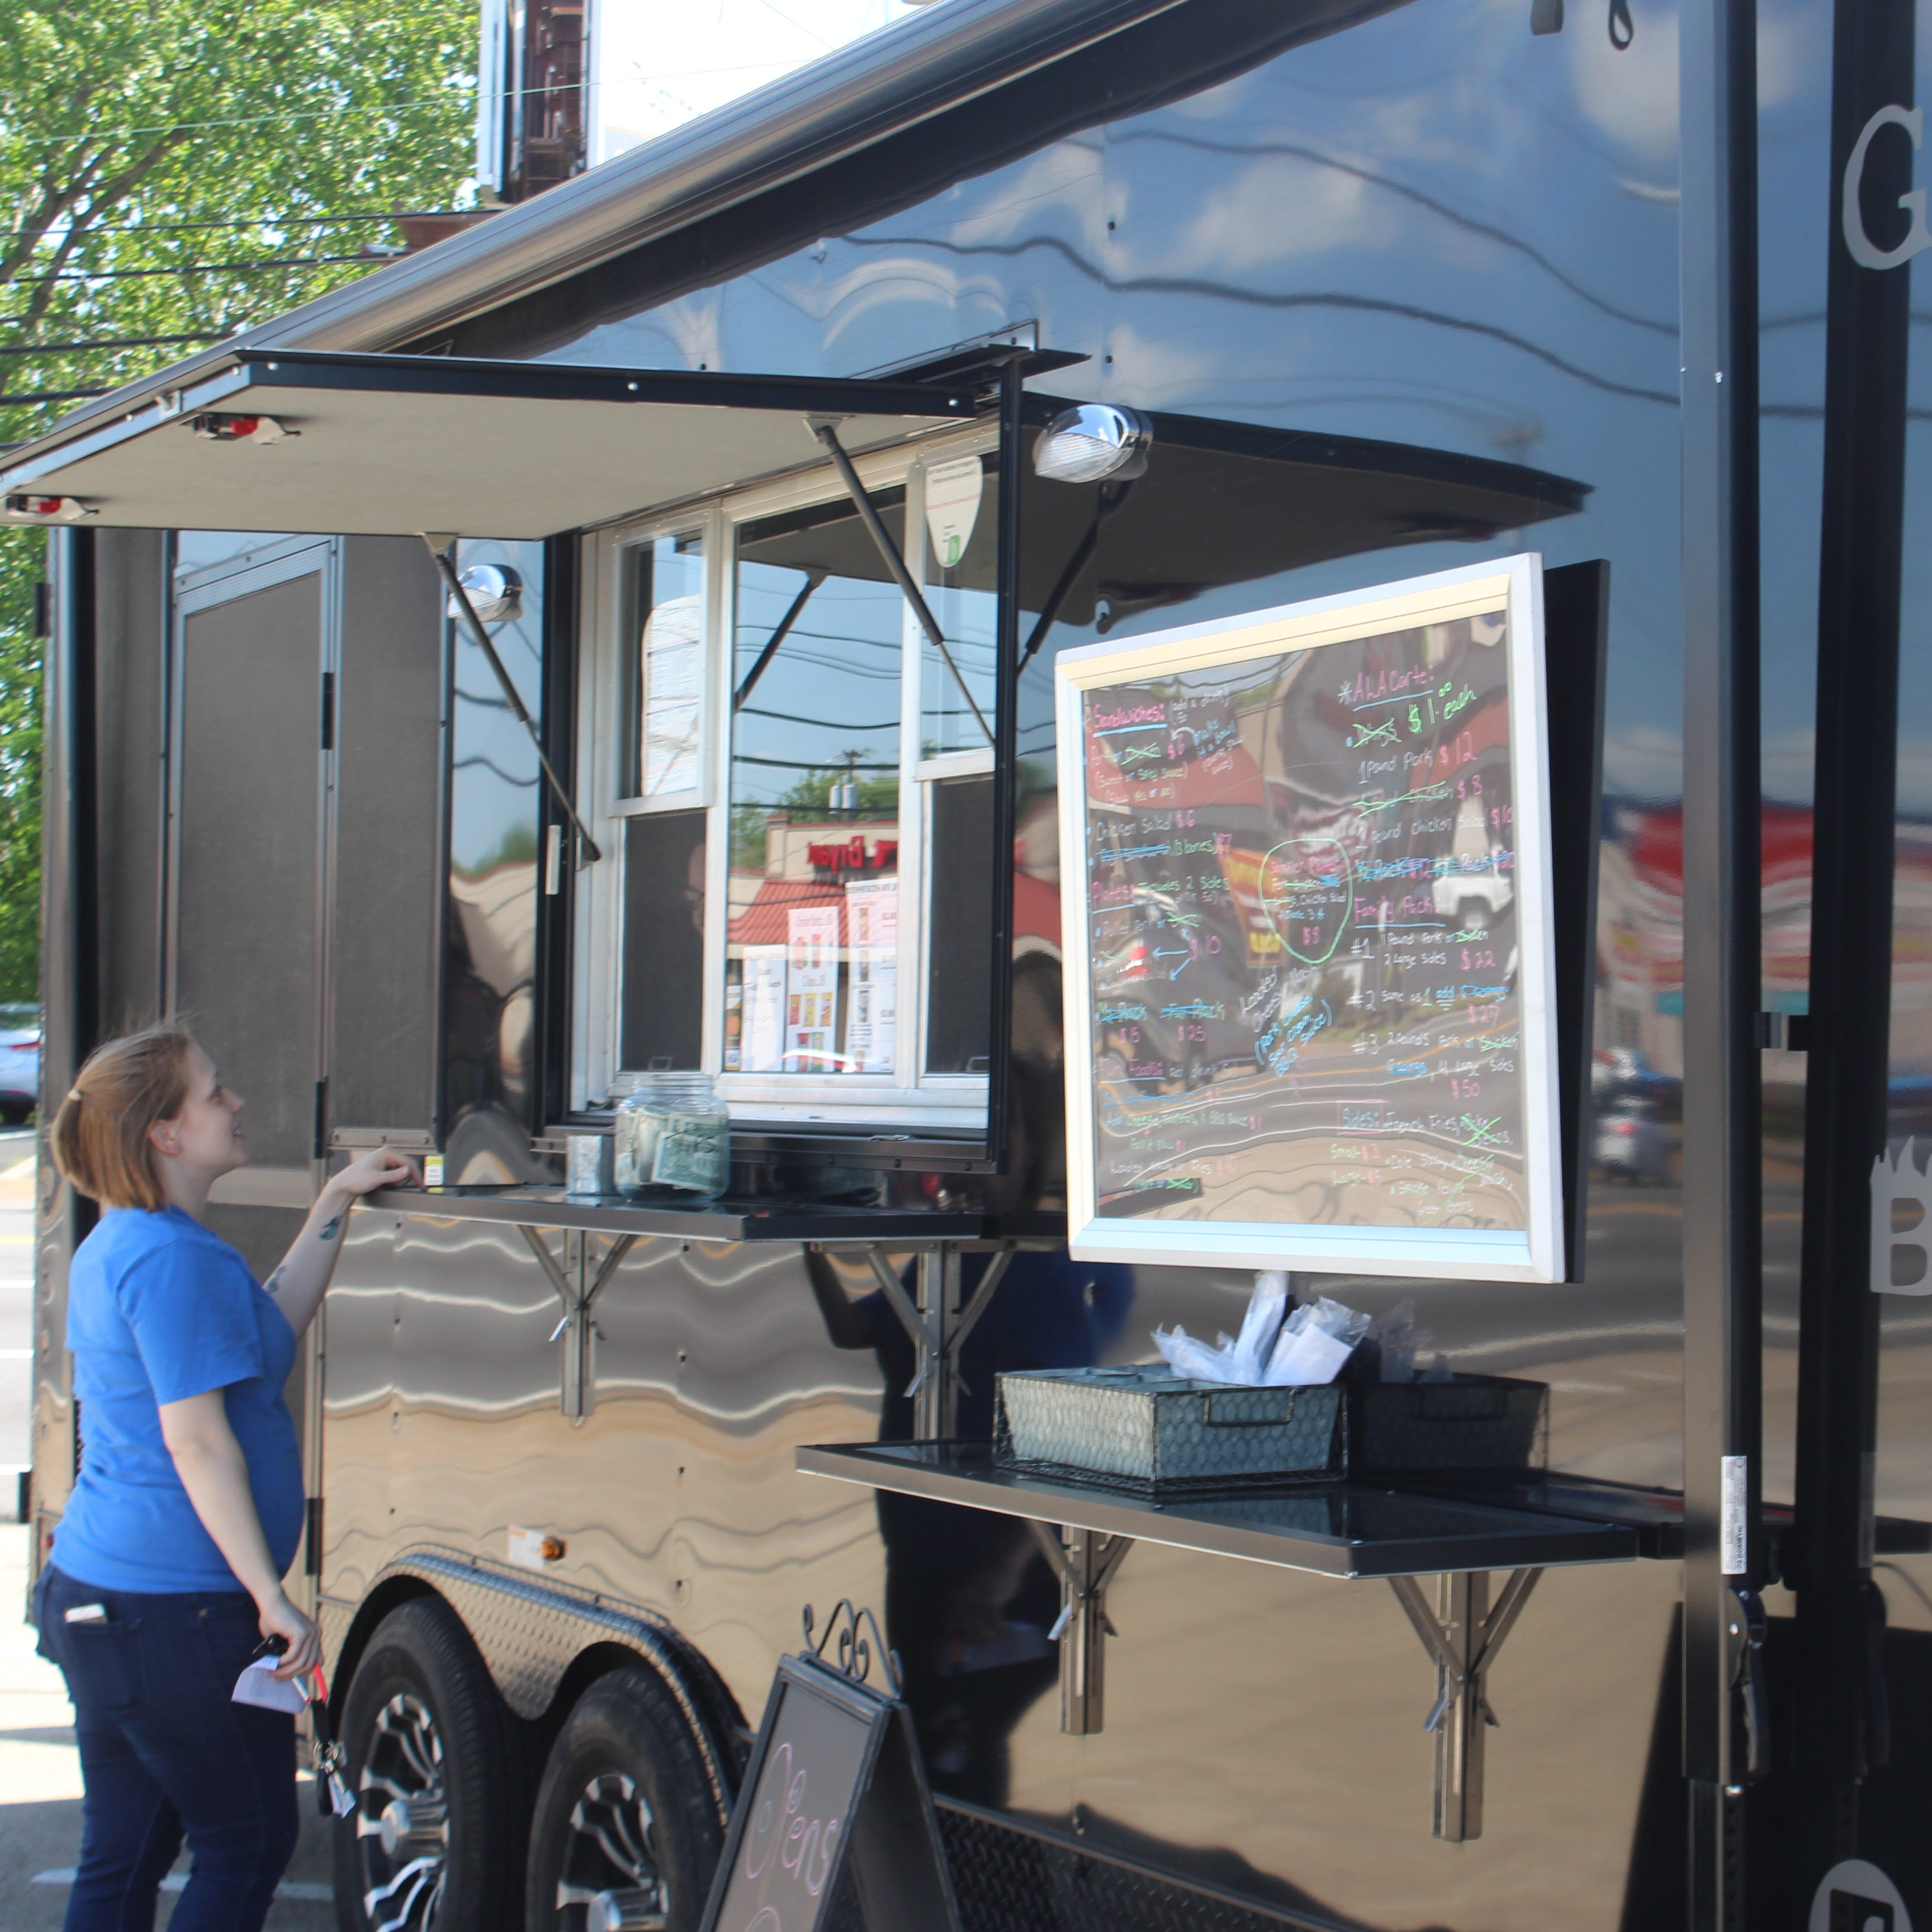 Food trucks in Clarksville could face heftier city fees